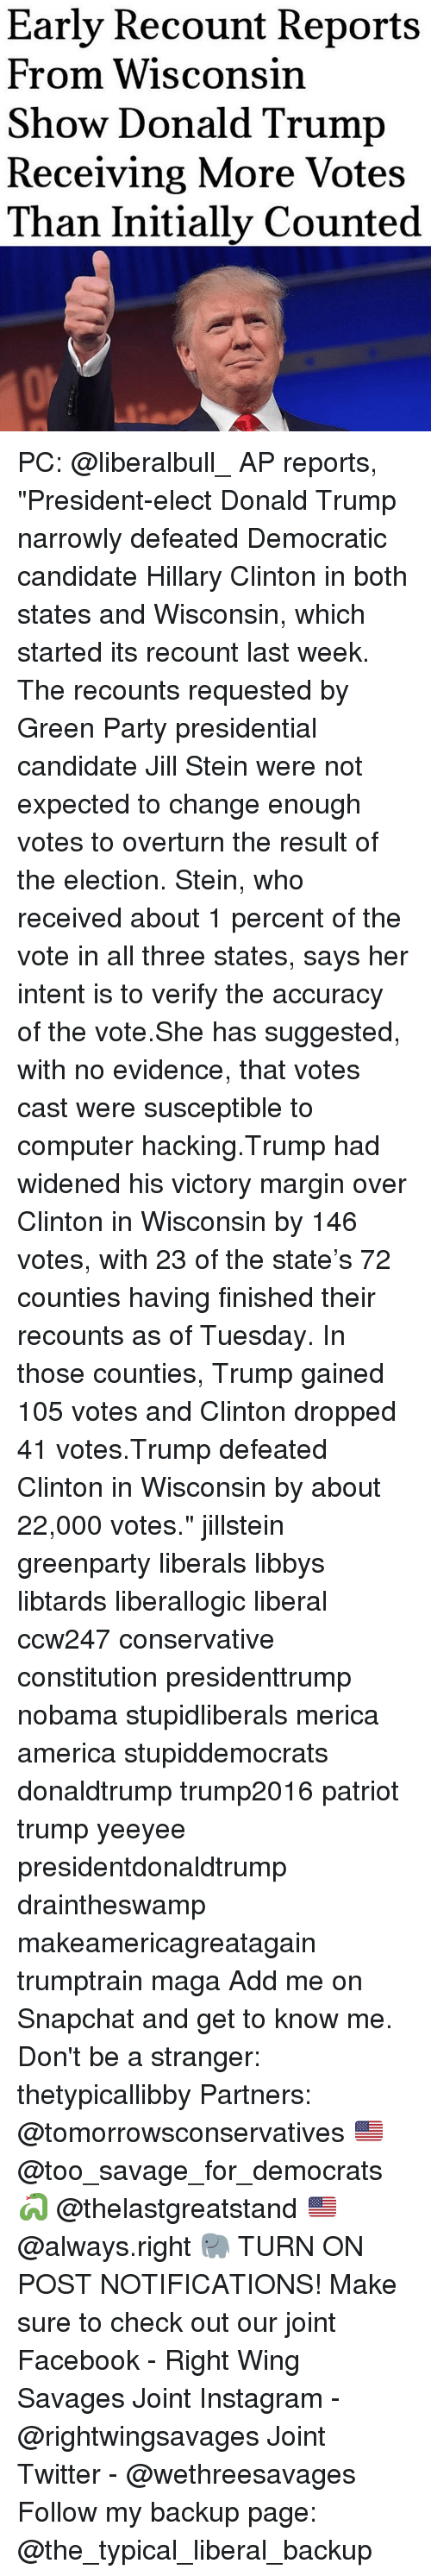 "Computers, Donald Trump, and Hillary Clinton: Early Recount Reports  From Wisconsin  Show Donald Trump  Receiving More Votes  Than Initially Counted PC: @liberalbull_ AP reports, ""President-elect Donald Trump narrowly defeated Democratic candidate Hillary Clinton in both states and Wisconsin, which started its recount last week. The recounts requested by Green Party presidential candidate Jill Stein were not expected to change enough votes to overturn the result of the election. Stein, who received about 1 percent of the vote in all three states, says her intent is to verify the accuracy of the vote.She has suggested, with no evidence, that votes cast were susceptible to computer hacking.Trump had widened his victory margin over Clinton in Wisconsin by 146 votes, with 23 of the state's 72 counties having finished their recounts as of Tuesday. In those counties, Trump gained 105 votes and Clinton dropped 41 votes.Trump defeated Clinton in Wisconsin by about 22,000 votes."" jillstein greenparty liberals libbys libtards liberallogic liberal ccw247 conservative constitution presidenttrump nobama stupidliberals merica america stupiddemocrats donaldtrump trump2016 patriot trump yeeyee presidentdonaldtrump draintheswamp makeamericagreatagain trumptrain maga Add me on Snapchat and get to know me. Don't be a stranger: thetypicallibby Partners: @tomorrowsconservatives 🇺🇸 @too_savage_for_democrats 🐍 @thelastgreatstand 🇺🇸 @always.right 🐘 TURN ON POST NOTIFICATIONS! Make sure to check out our joint Facebook - Right Wing Savages Joint Instagram - @rightwingsavages Joint Twitter - @wethreesavages Follow my backup page: @the_typical_liberal_backup"